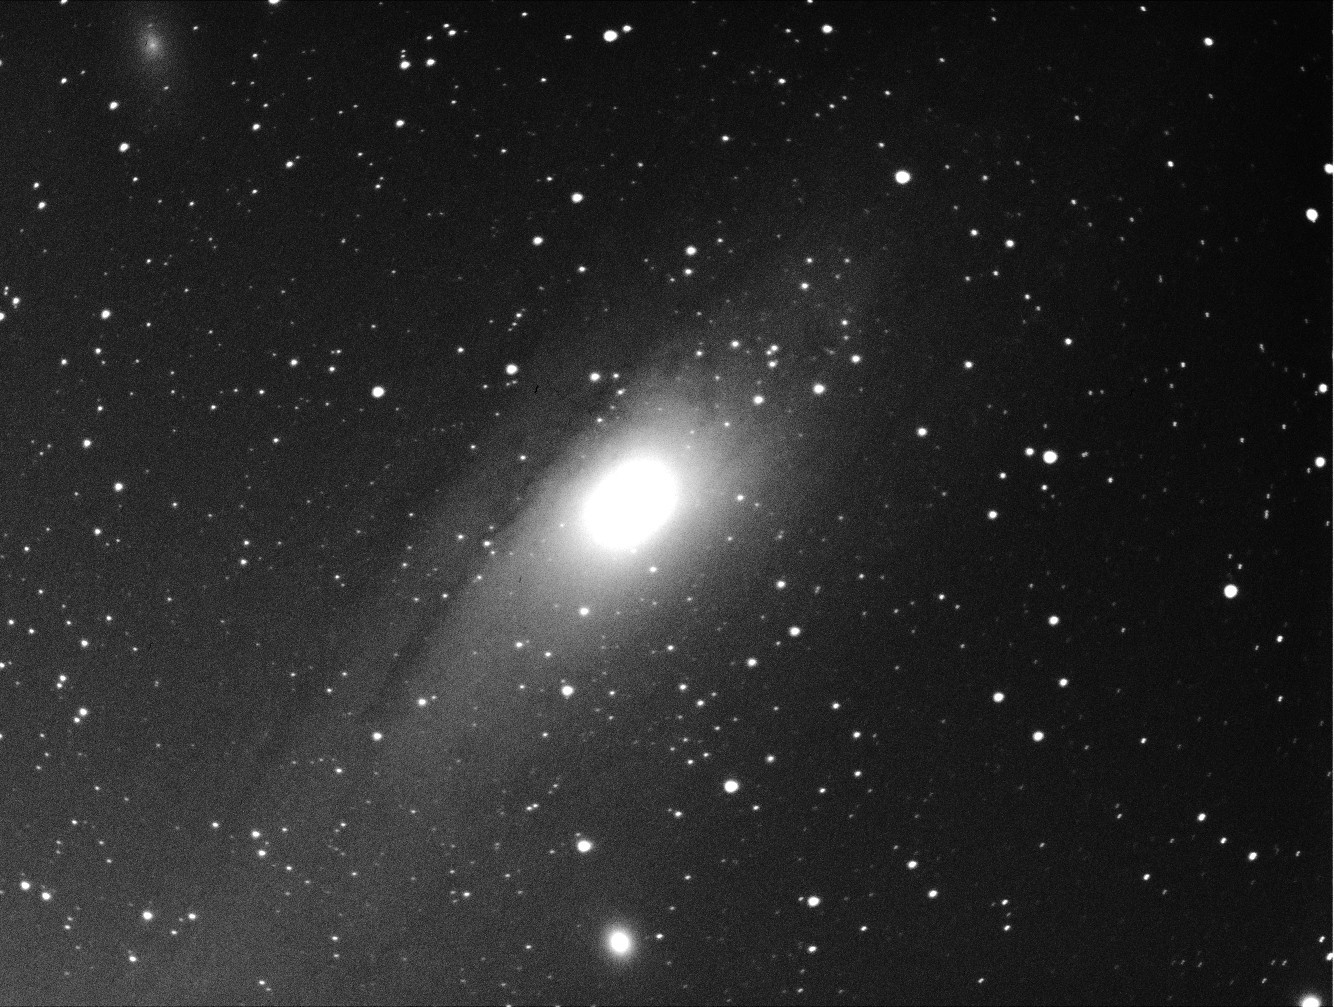 M31 - Andromeda Galaxy (plus M32 and M101)